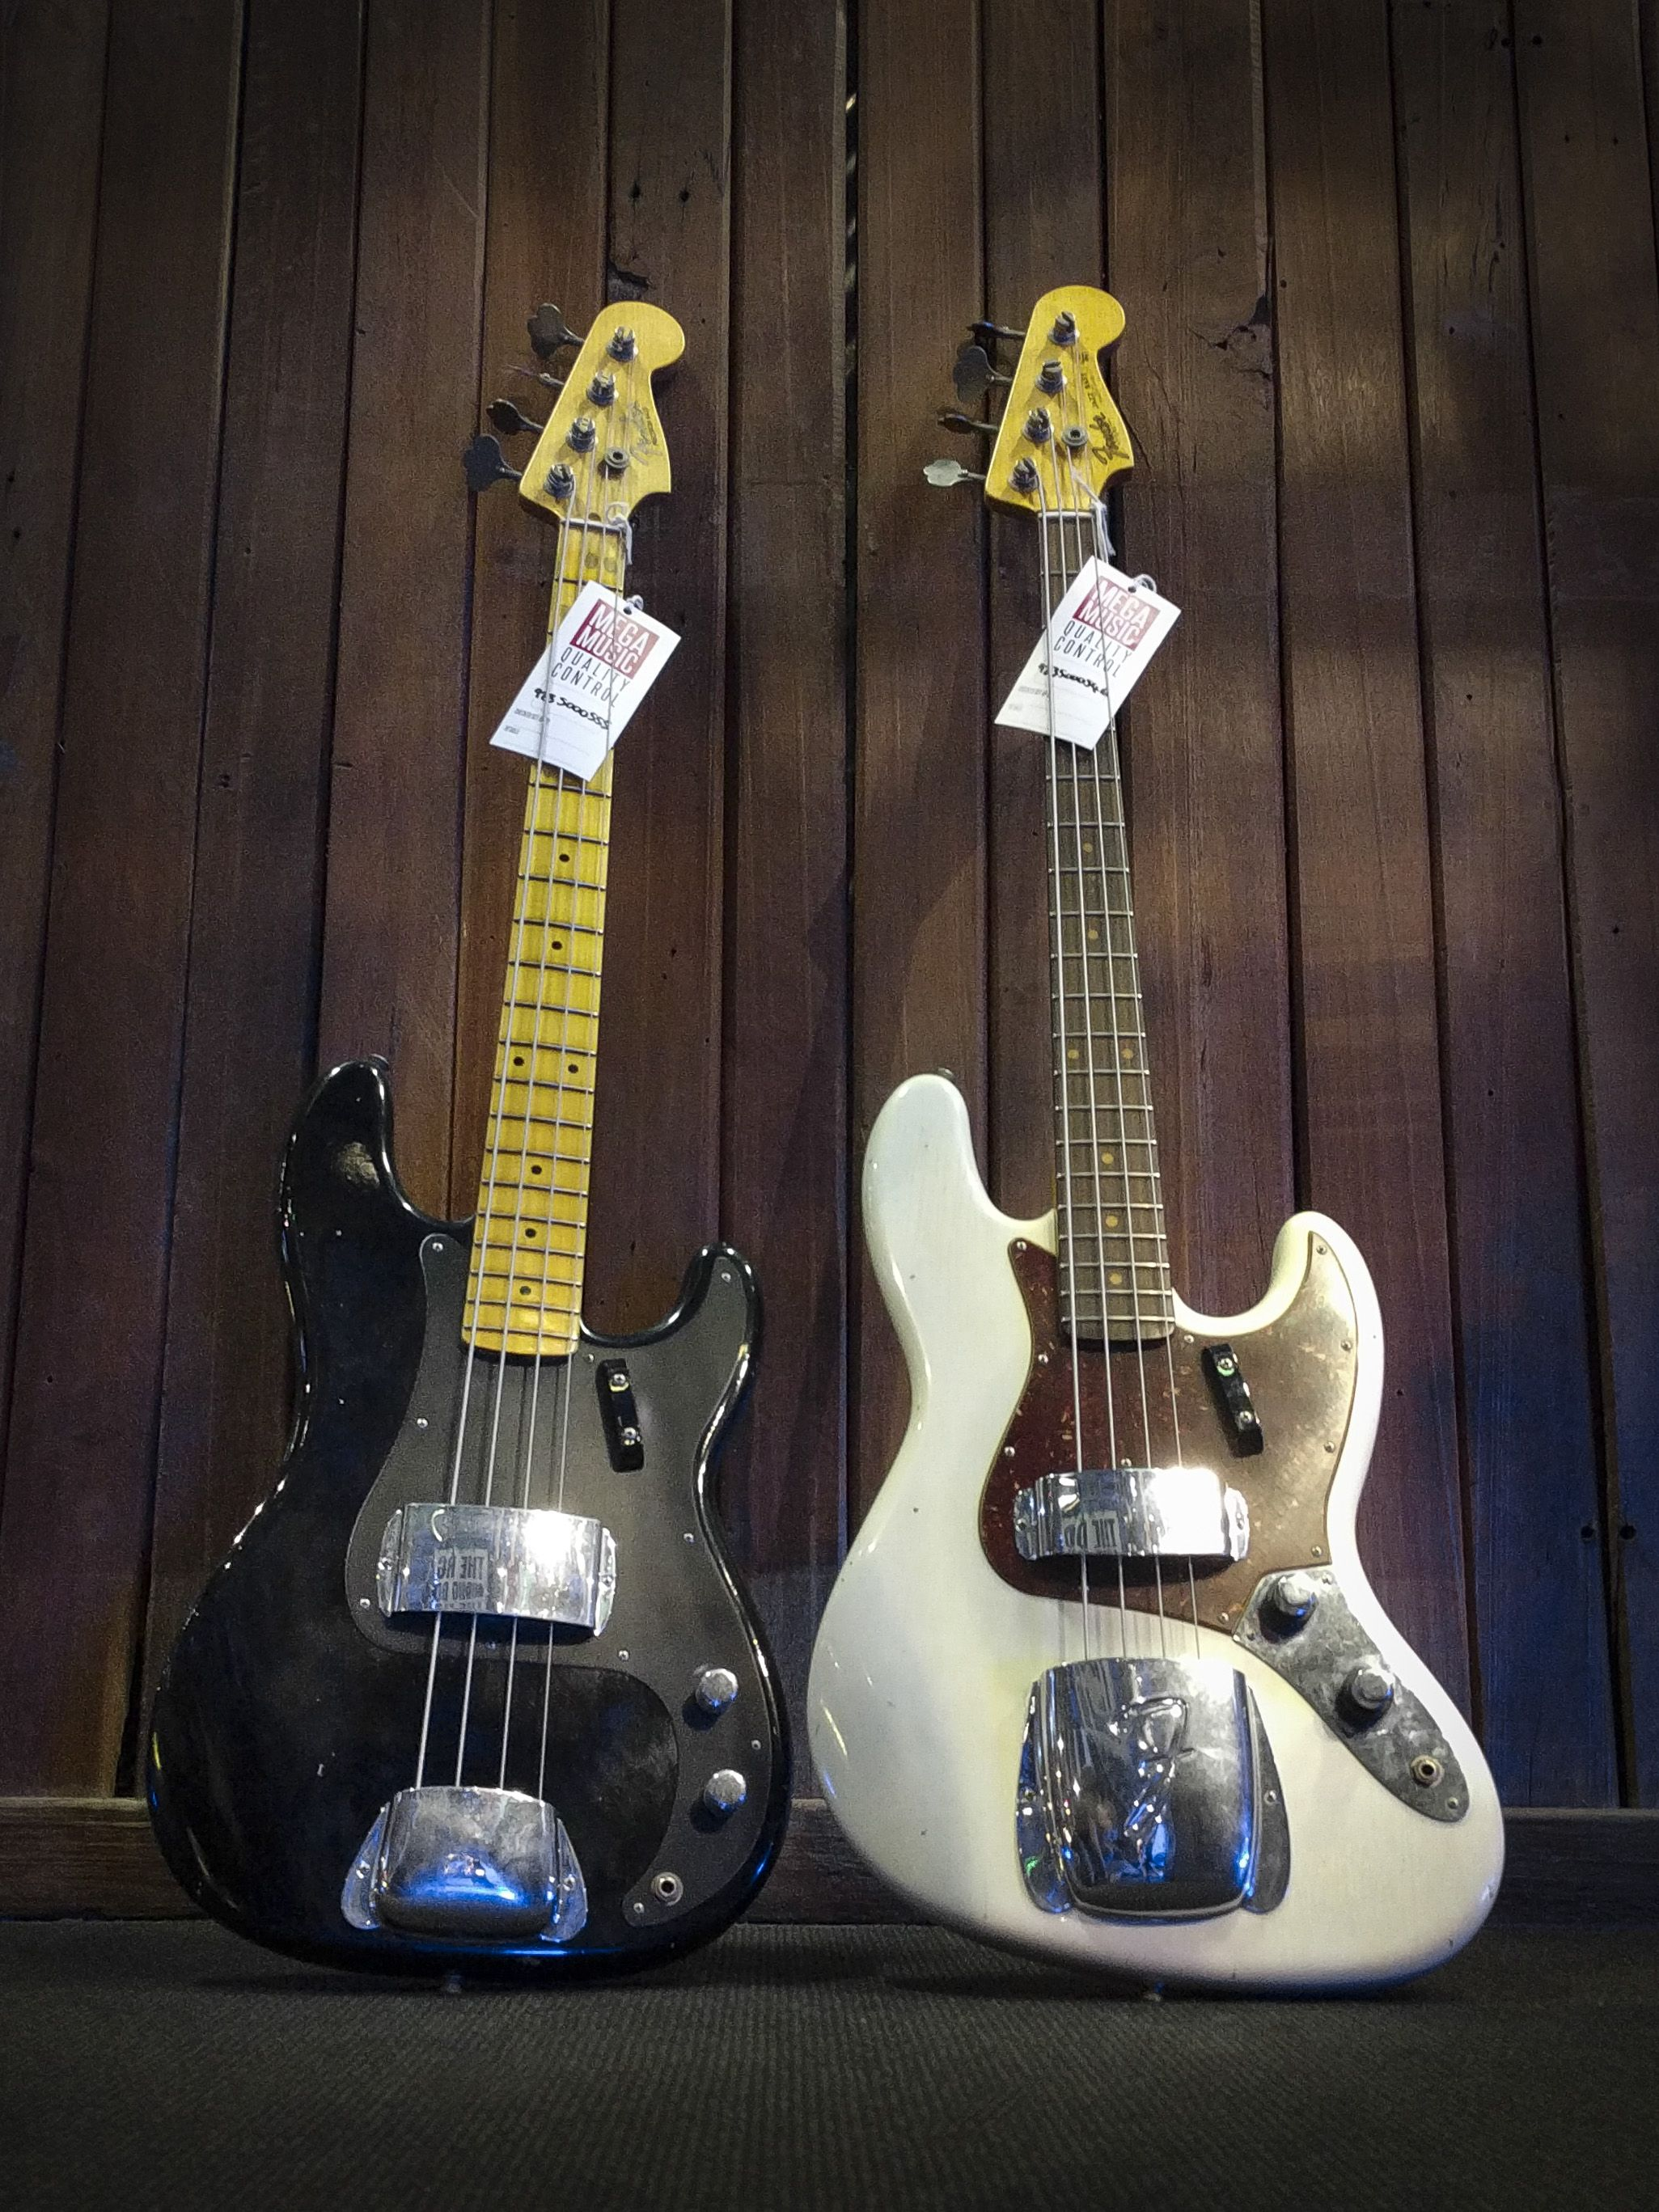 Fender Custom Shop Limited Edition 1958 Precision Bass Journeyman Relic In Aged Black And 1960 Jazz Bass Journeyman Relic In A Bass Guitar Fender P Bass Guitar